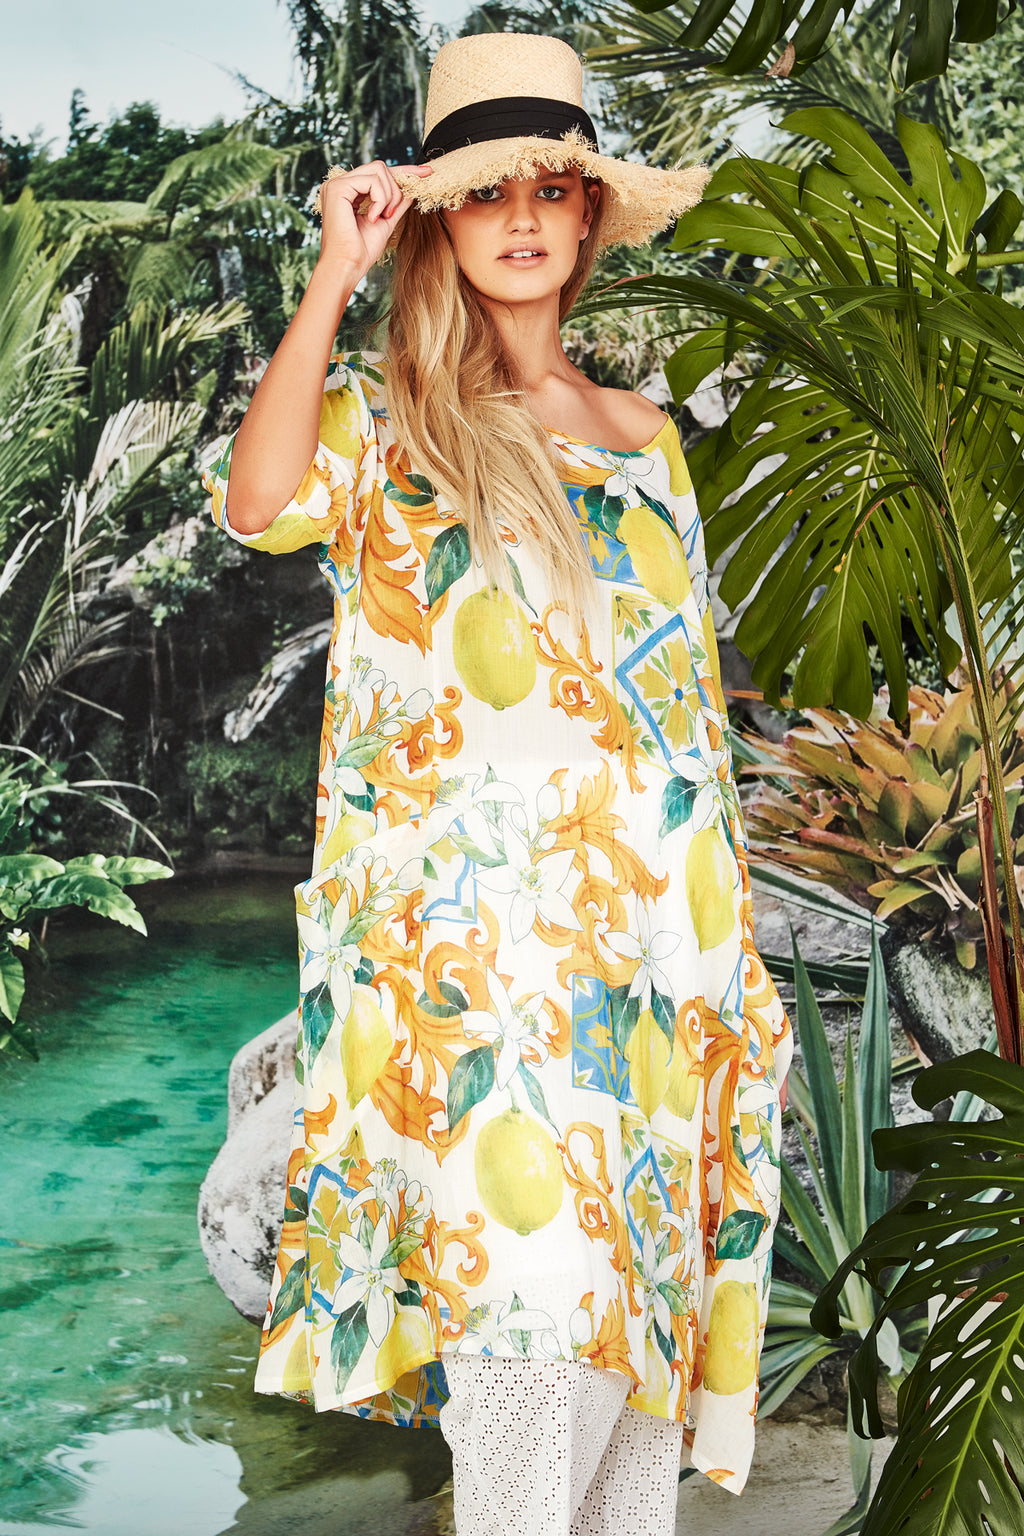 CURATE by Trelise Cooper - Summer Spirit Dress online at hunterminx